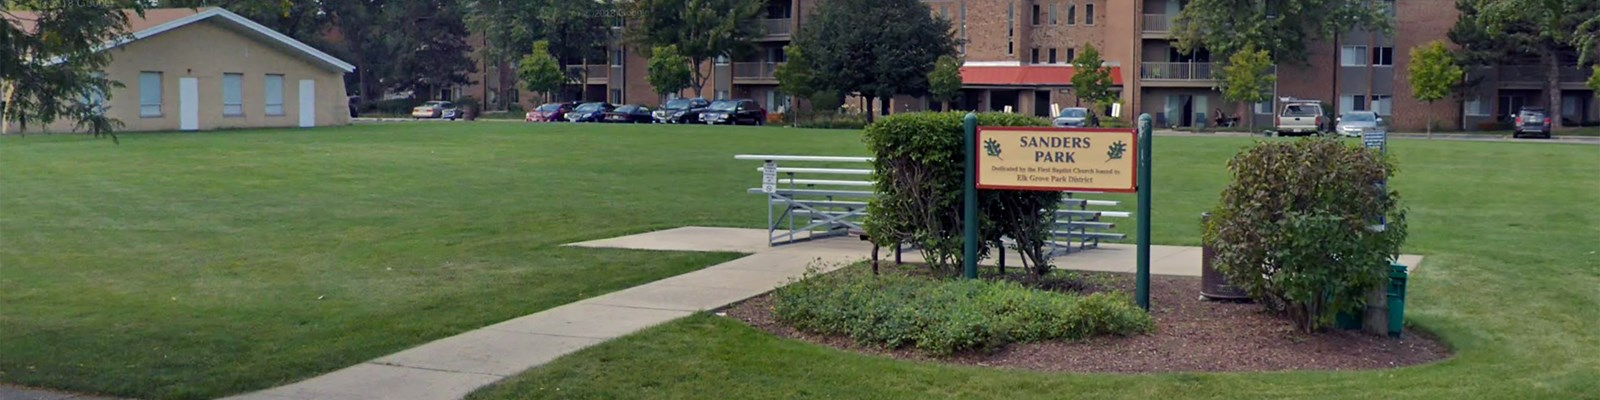 Sanders Park, Soccer Field, Picnic Area and More